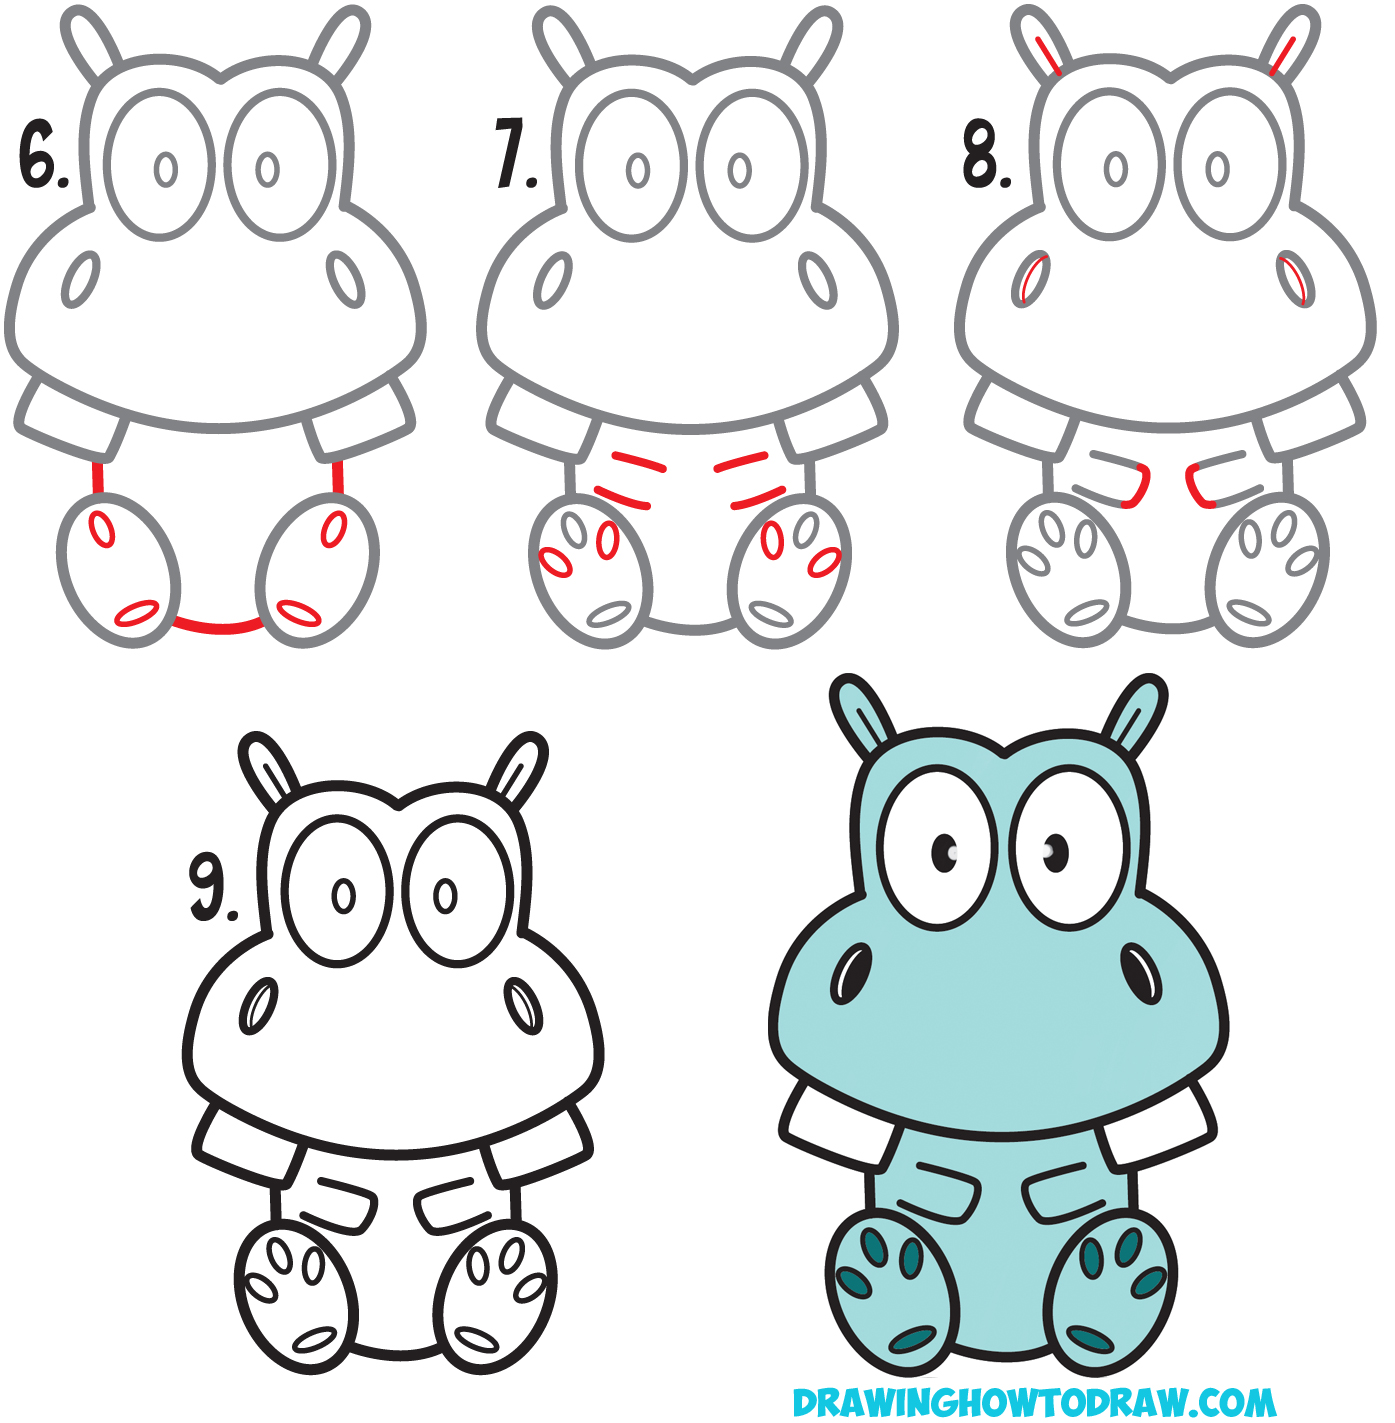 Learn How to Draw a Cute / Kawaii Cartoon Hippo Easy Step by Step Drawing Tutorial for Beginners & Kids